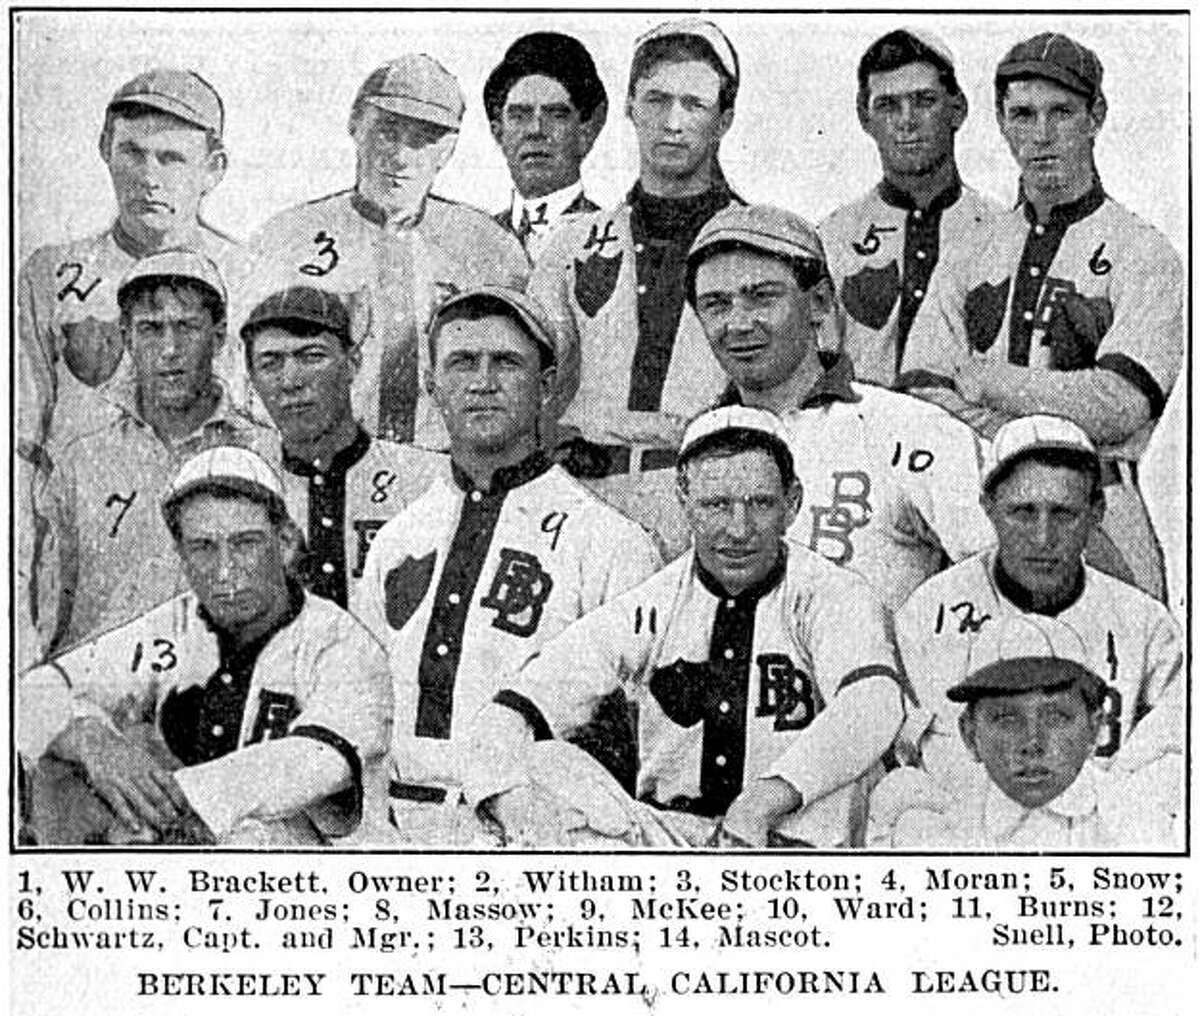 California baseball had a Central League and Berkeley had its own team. This photo documents its players. Photo from Richard Schwartz's book 'Berkeley 1900: Daily Life at the Turn of the Century.'